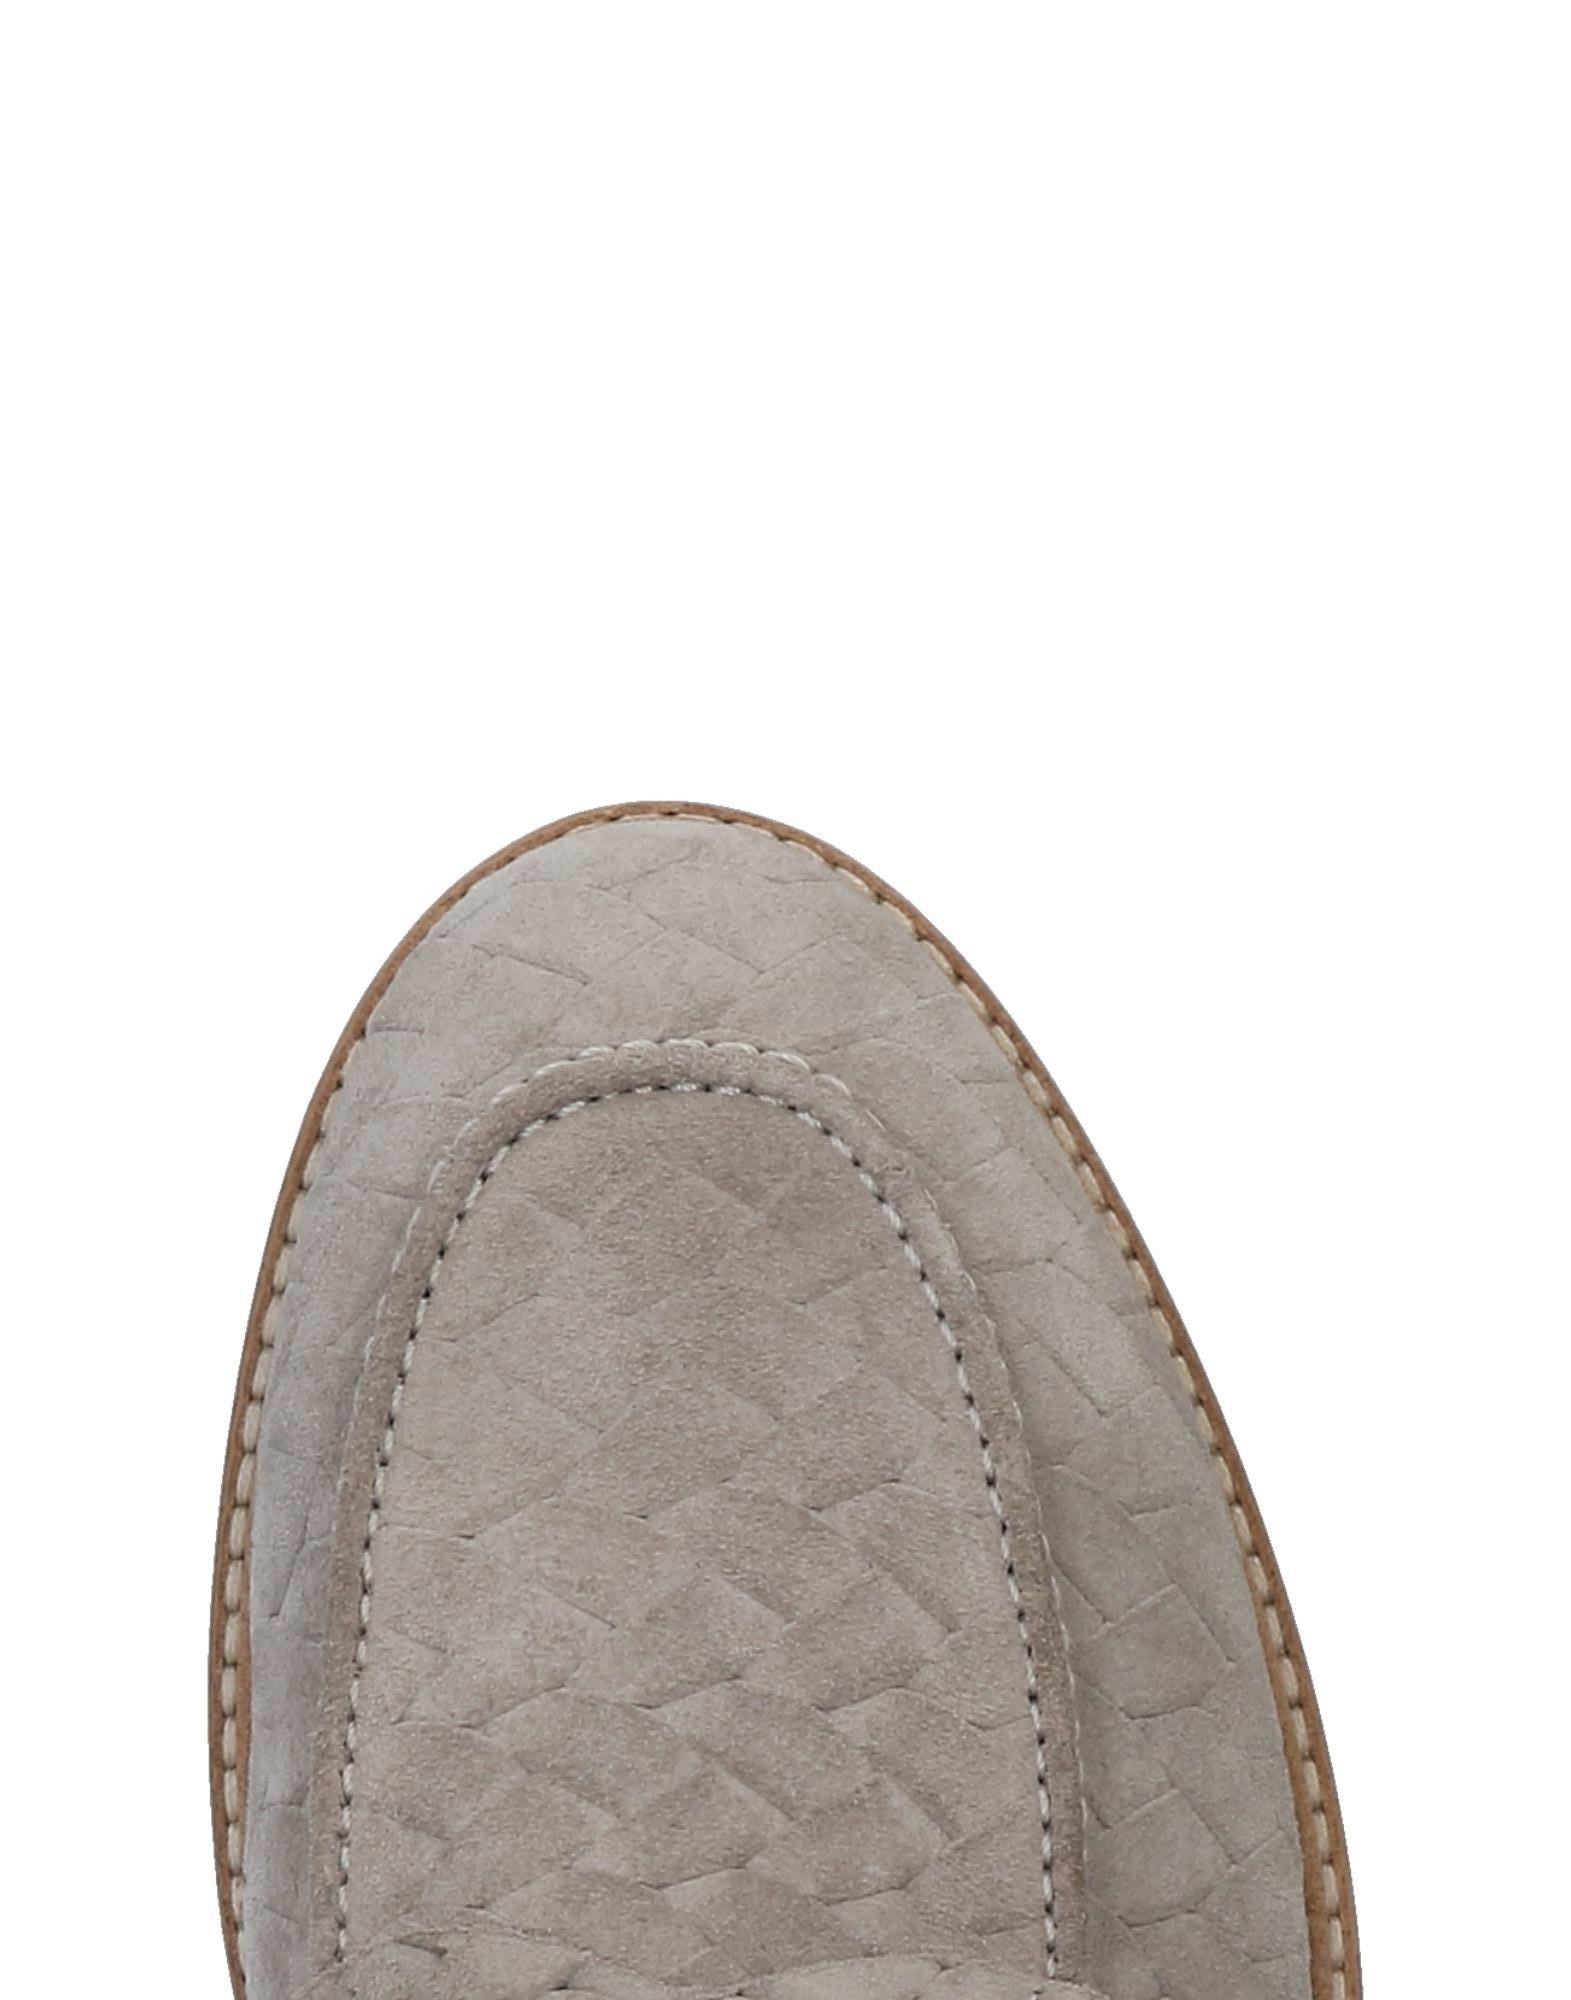 Cesare P. Loafers Loafers Loafers - Men Cesare P. Loafers online on  Australia - 11456094GR f6f3c6